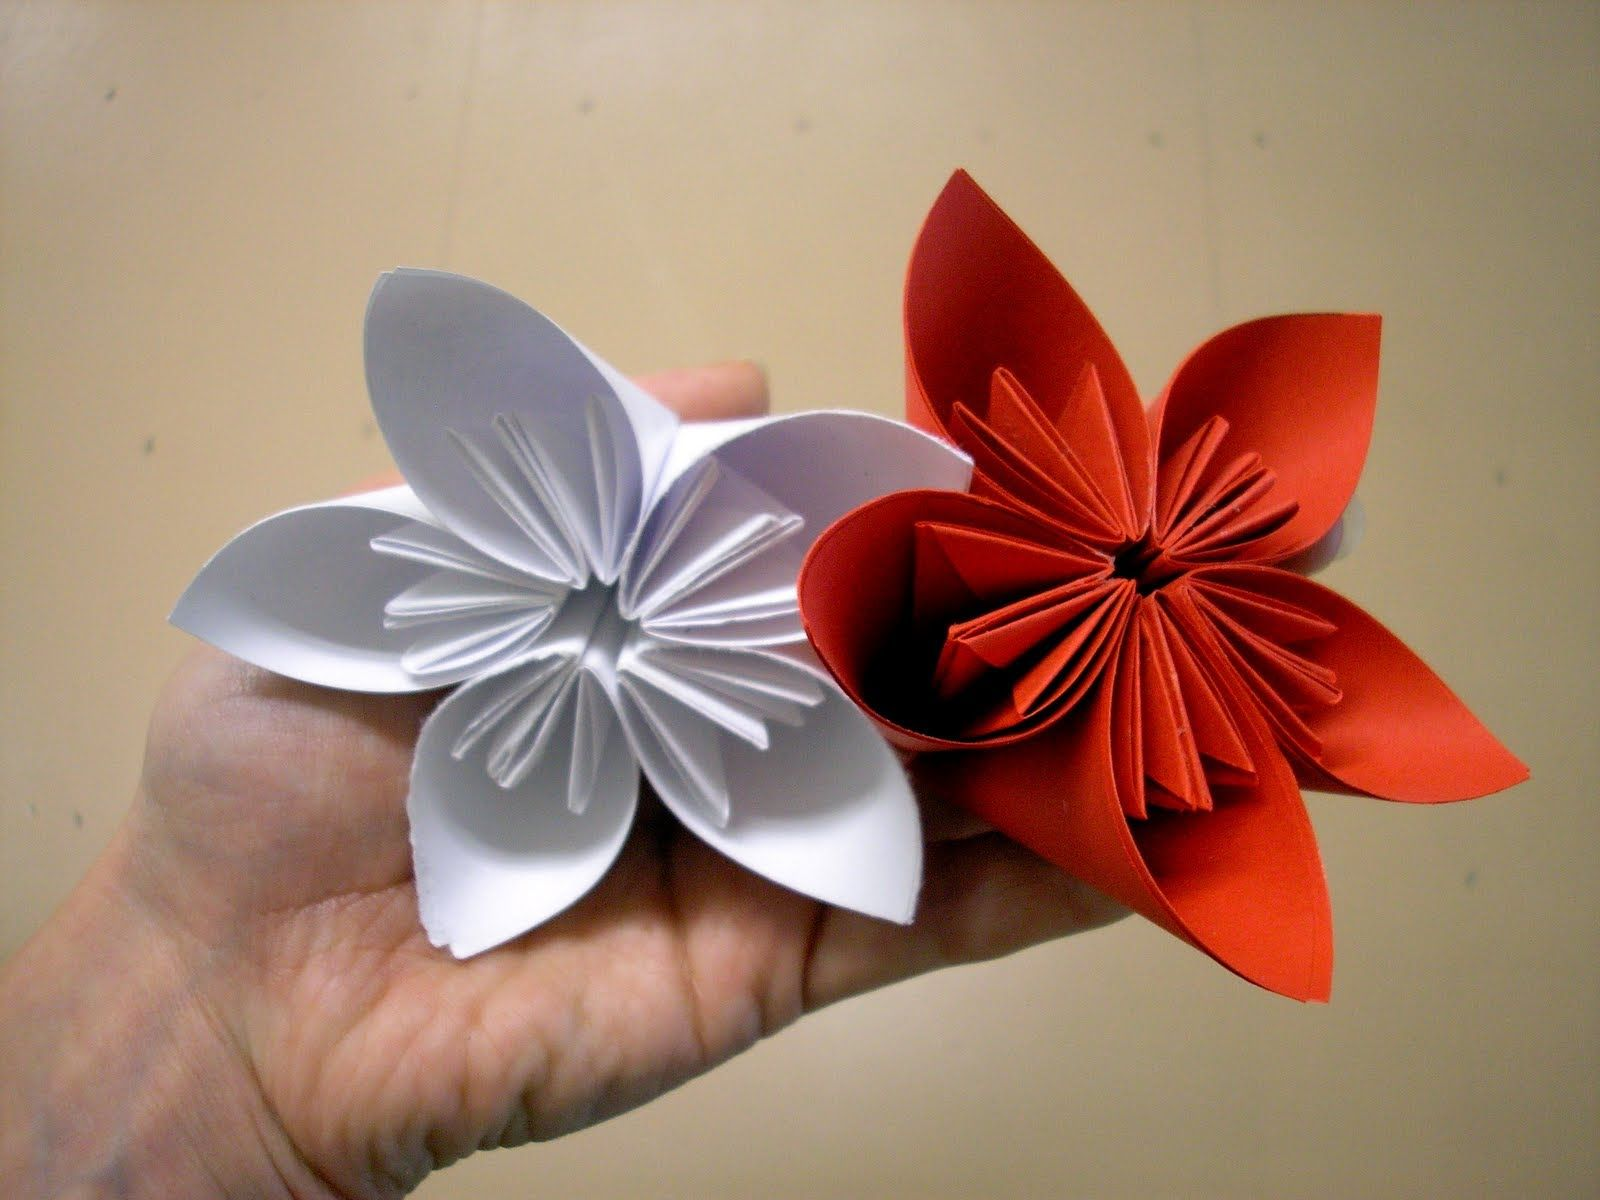 Origami flowers for beginners how to make origami flowers very origami flowers for beginners newbies can follow this tip origami flowers instructions origami tutorial mightylinksfo